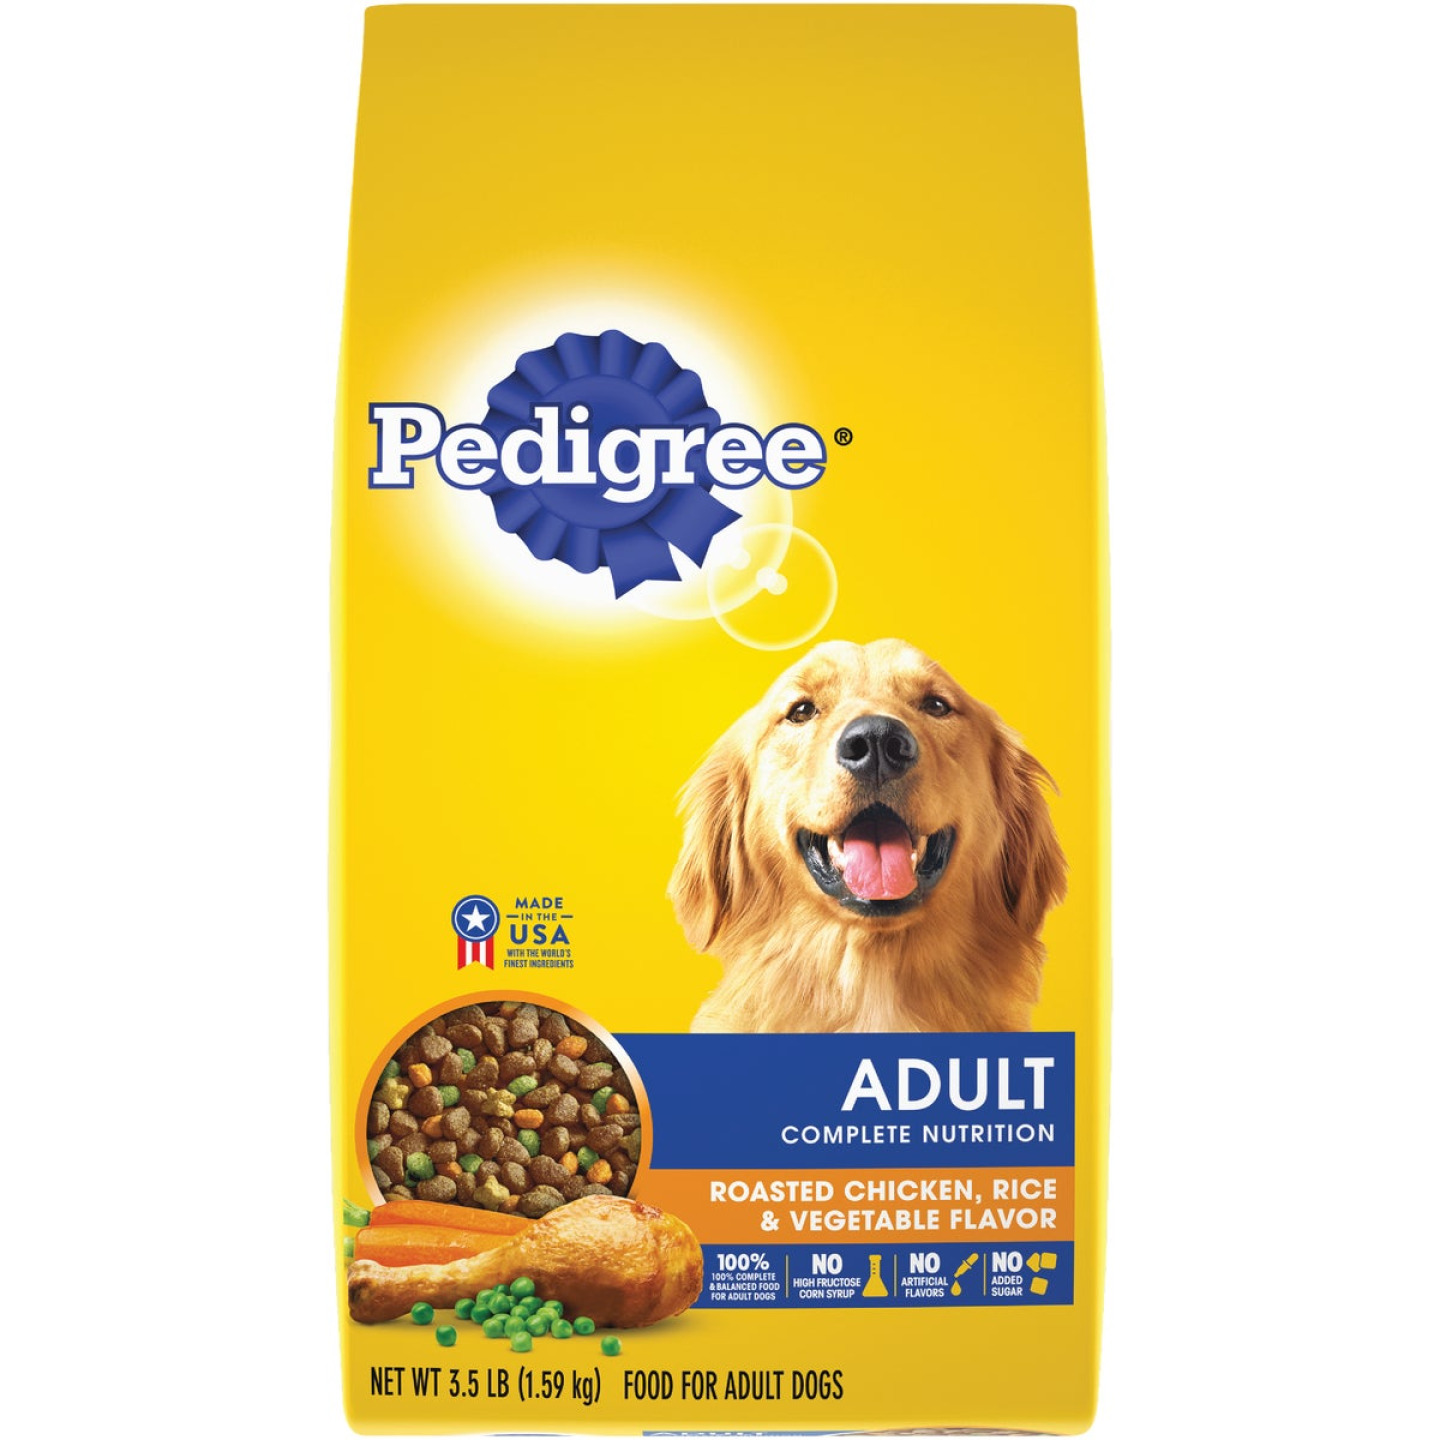 Pedigree Complete Nutrition 3.5 Lb. Roasted Chicken, Rice, & Vegetable Adult Dry Dog Food Image 1